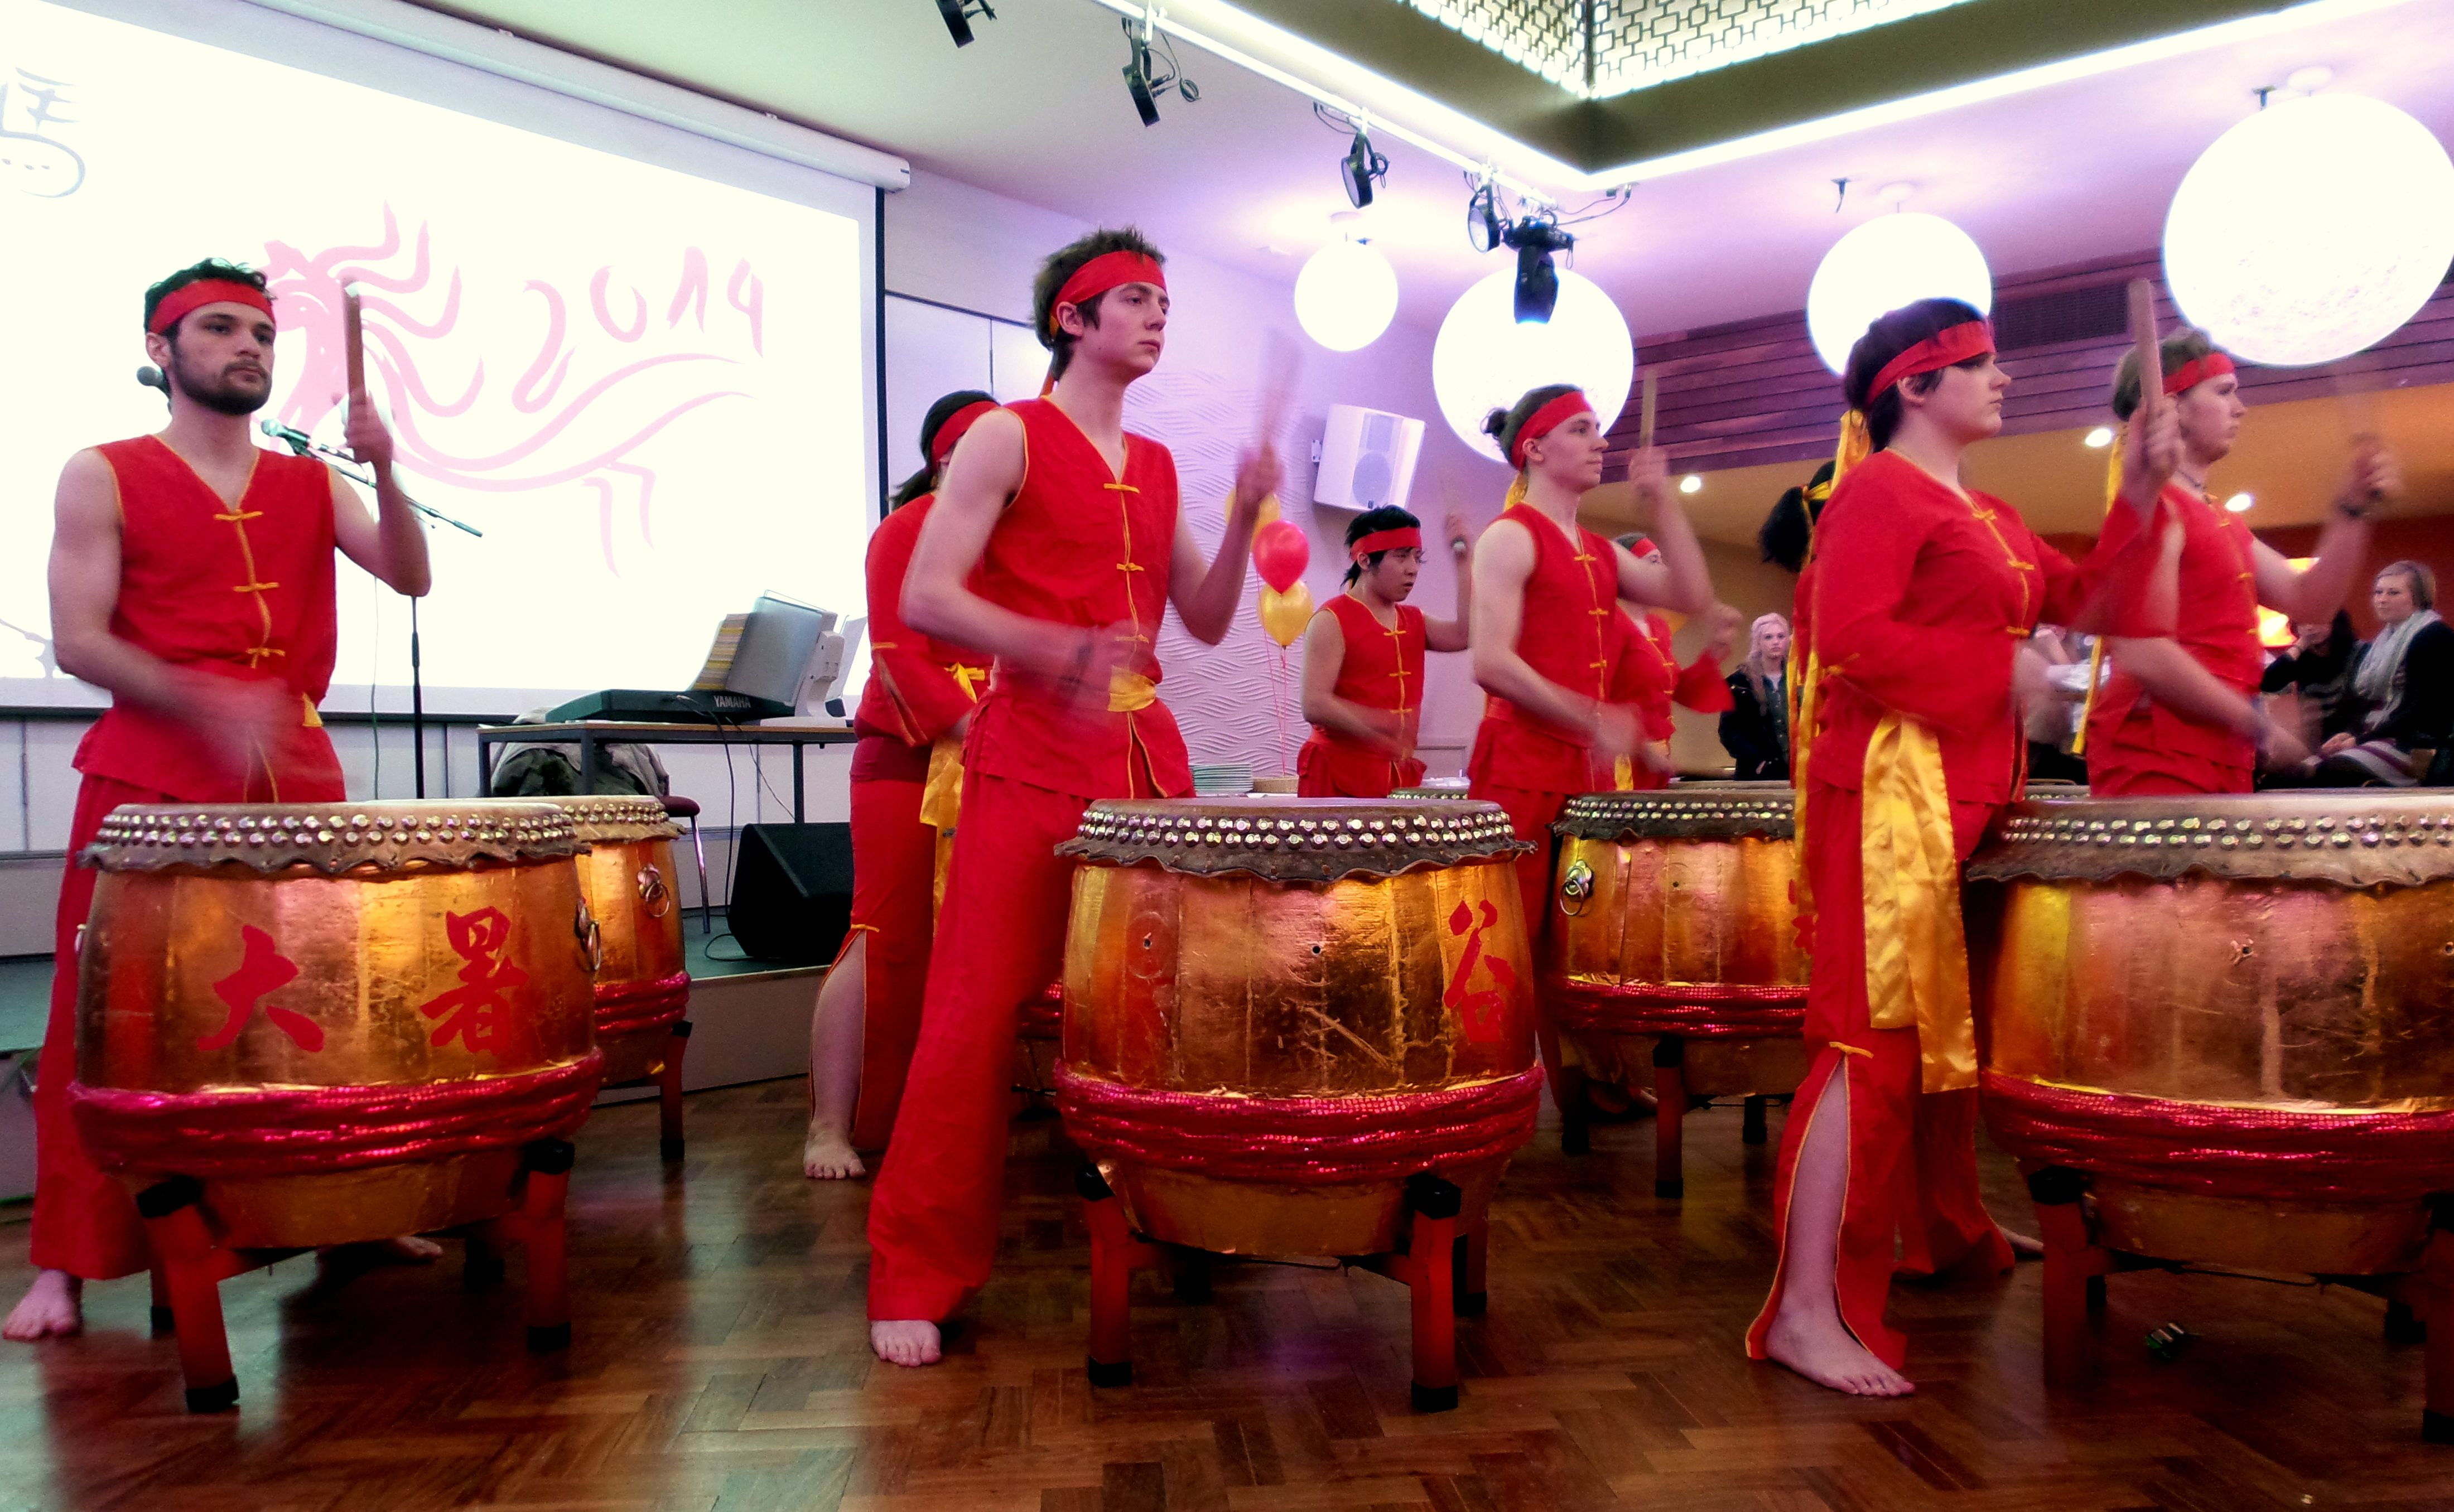 The festival drums were banging during Lunar New Year